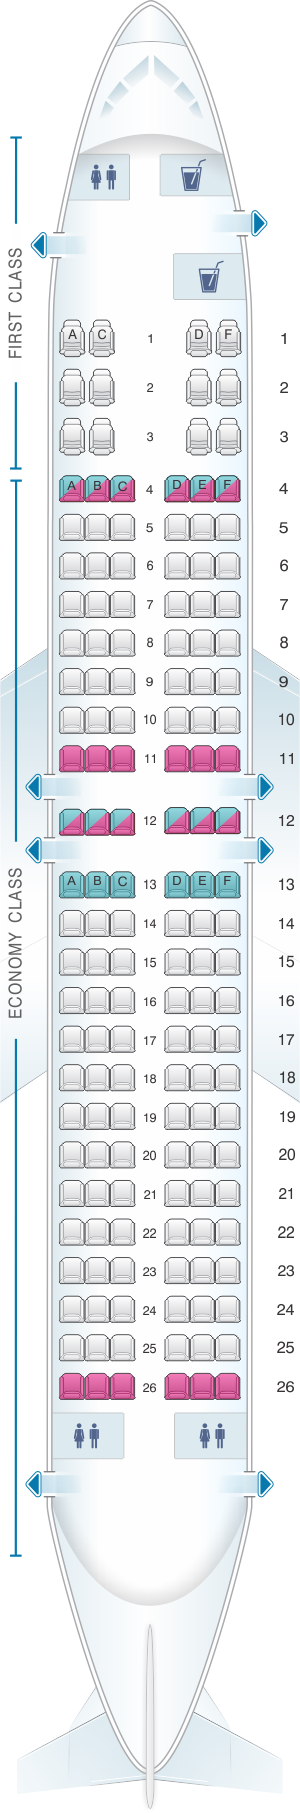 Seat map for Xtra Airways Boeing B737 400 150pax